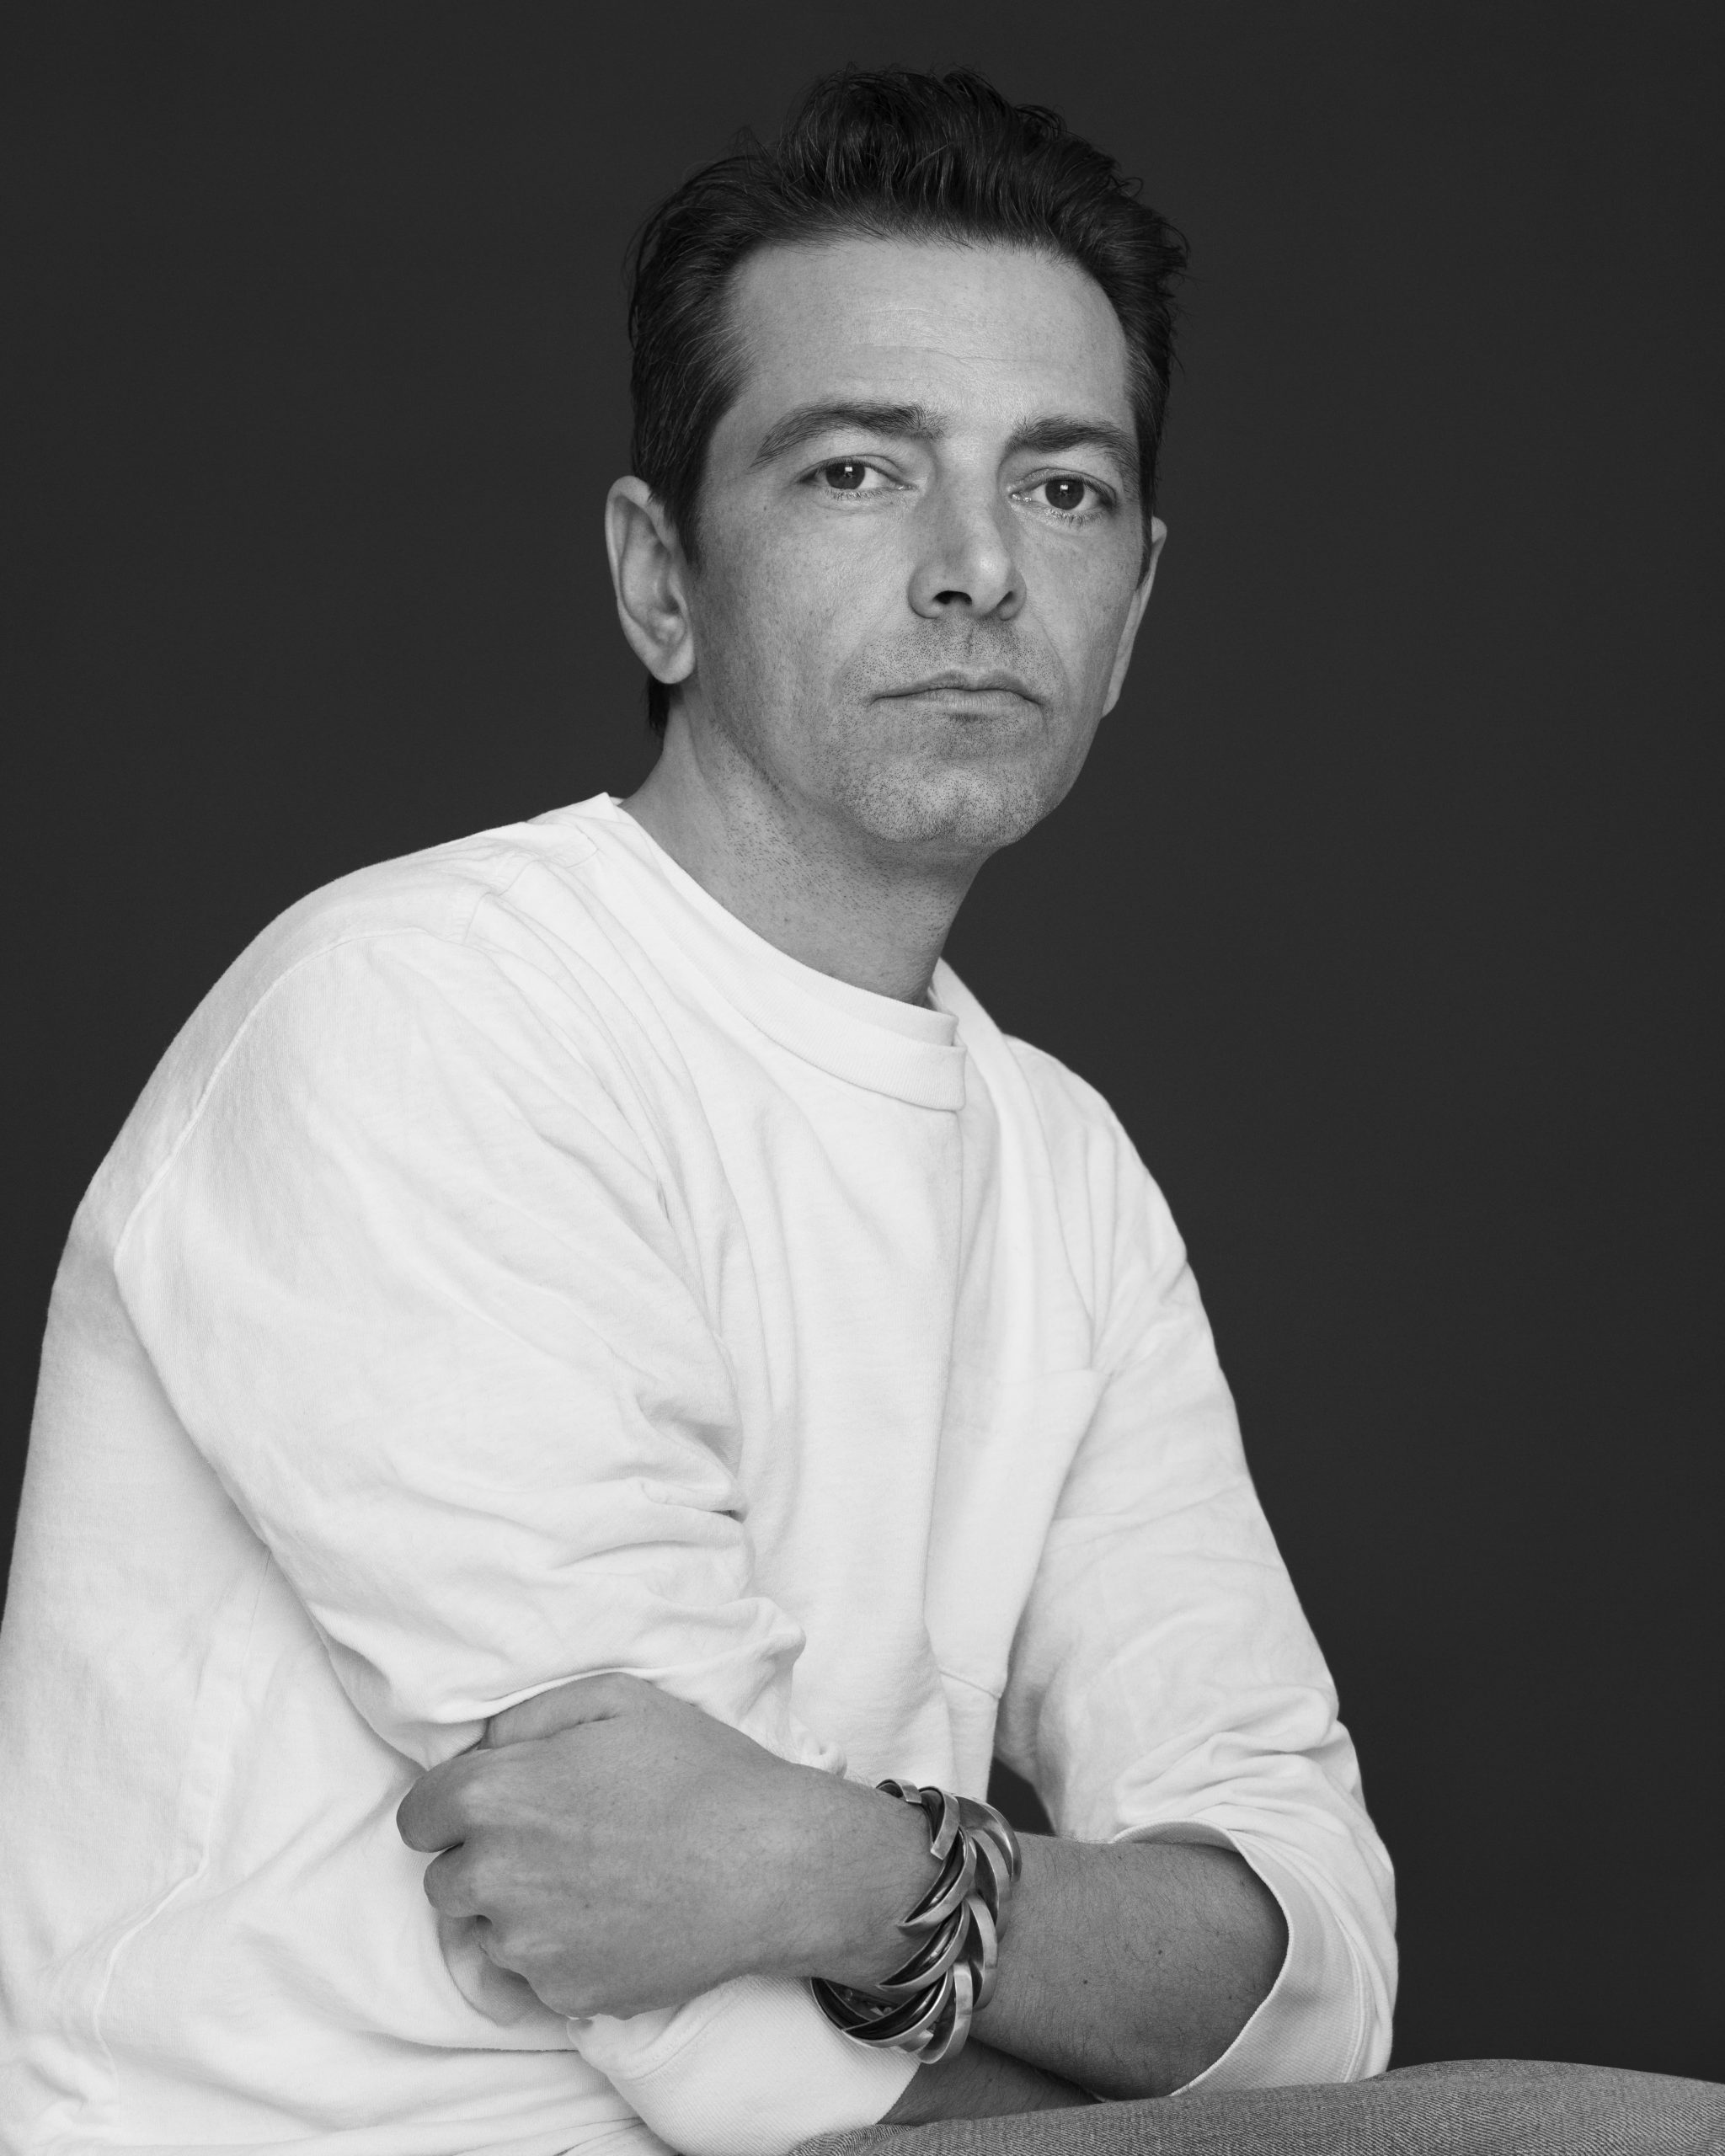 Alaia appoints Pieter Mulier as Creative Director